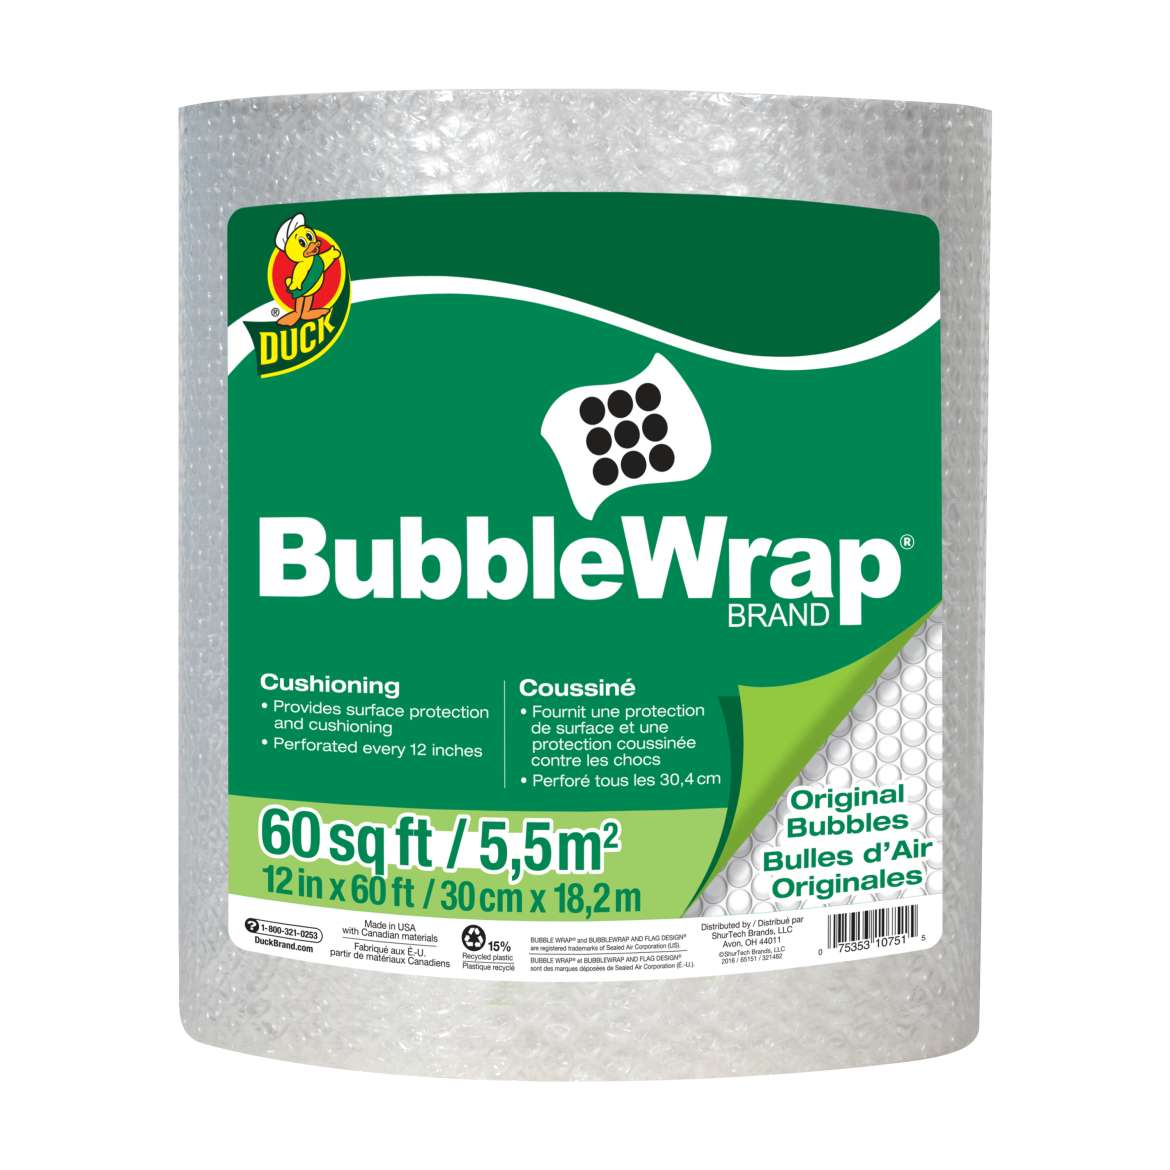 Duck® Brand Original Bubble Wrap® Cushioning - Clear, 12 in. x 60 ft. Image